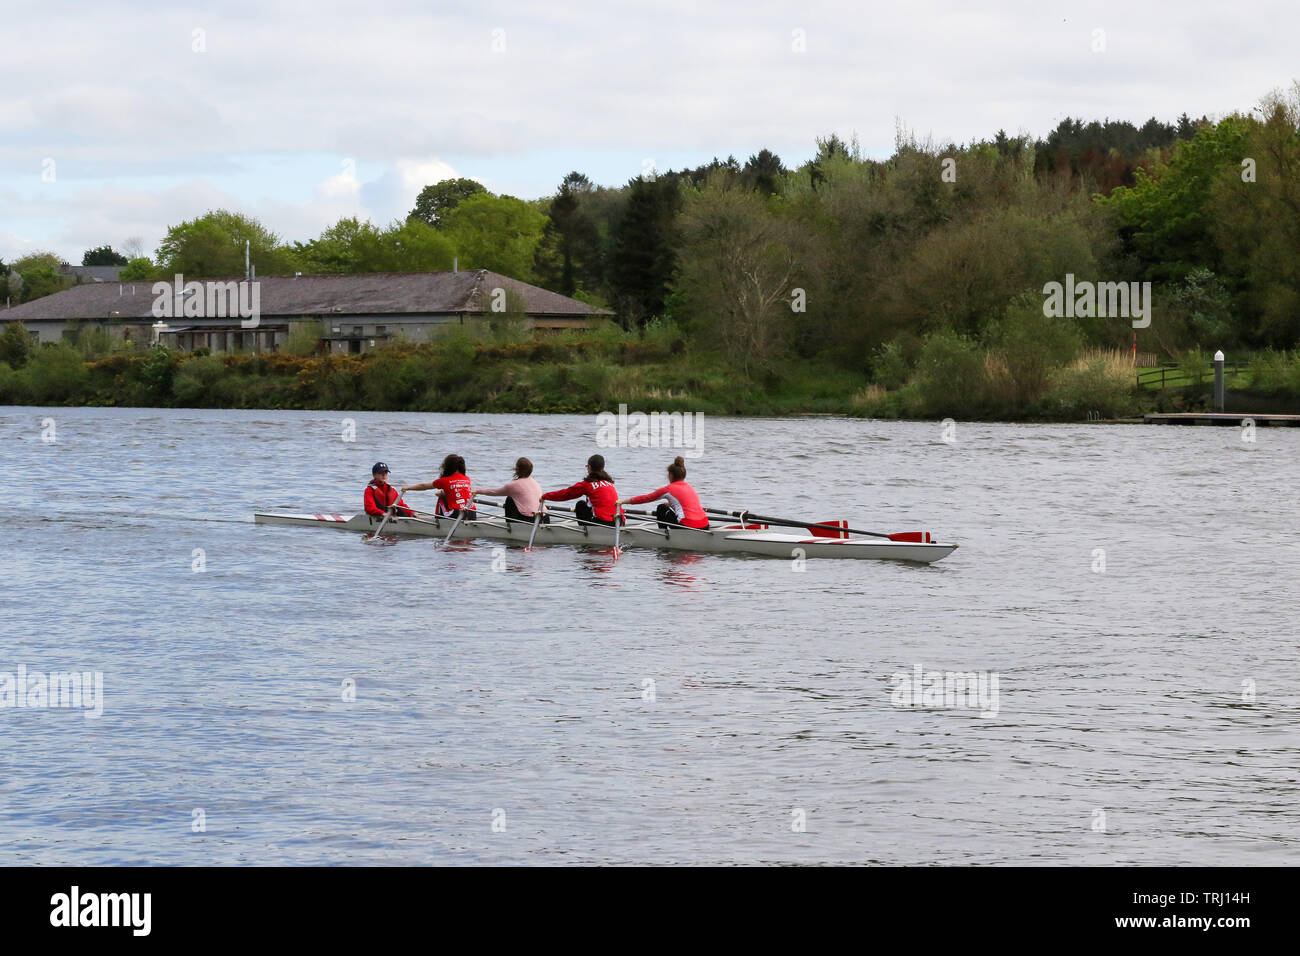 Rowing boat on the River Bann, Castleroe, Northern Ireland, with a women's coxed four pulling towards Coleraine. - Stock Image